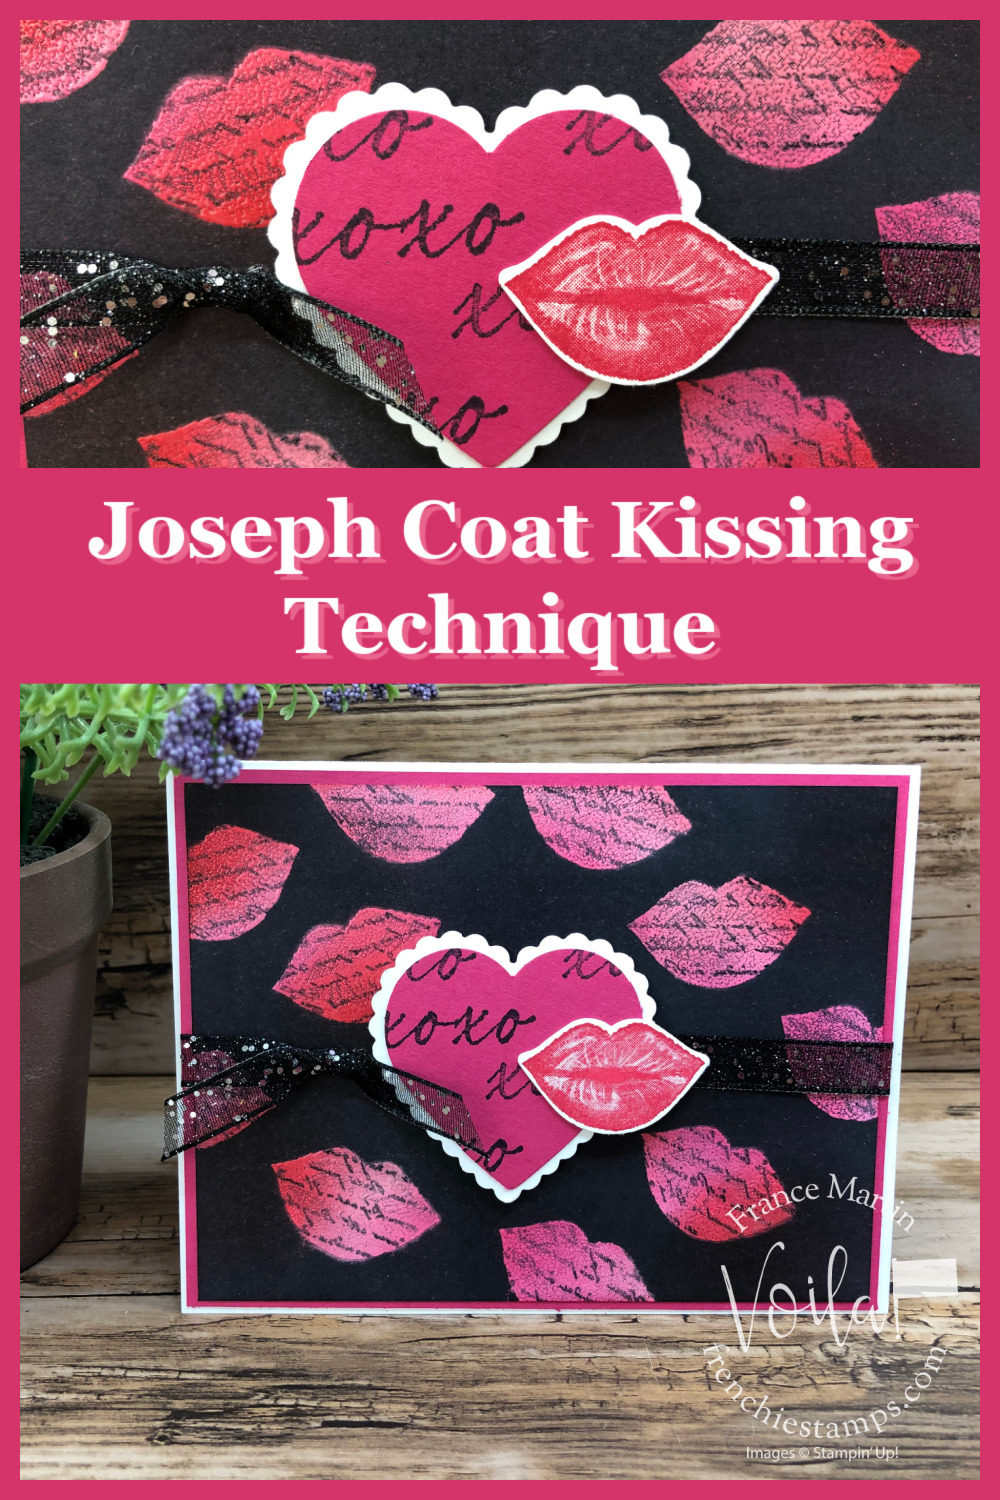 Joseph Coat Kissing Technique with Hearts and Kisses Stamp Set